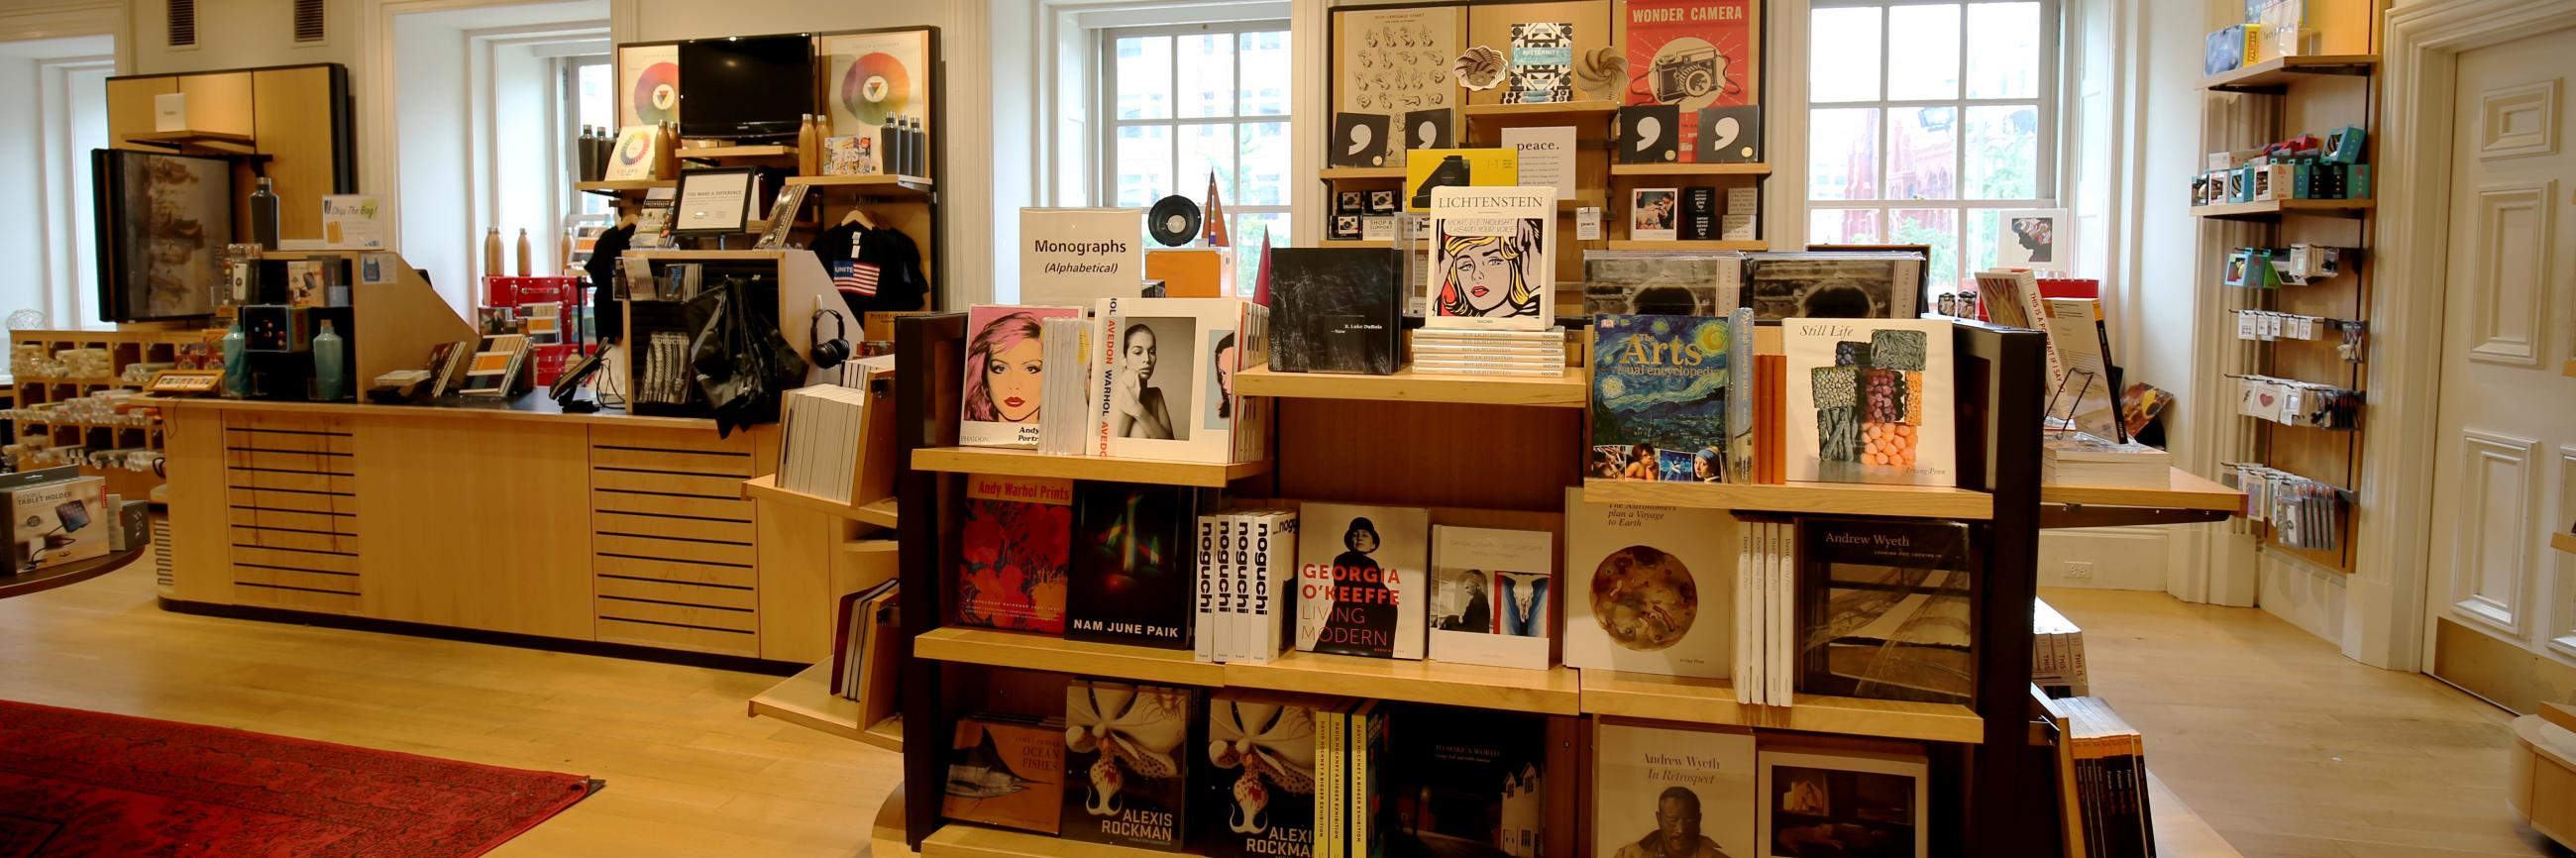 An image inside the gift shop at the Smithsonian American Art Museum.